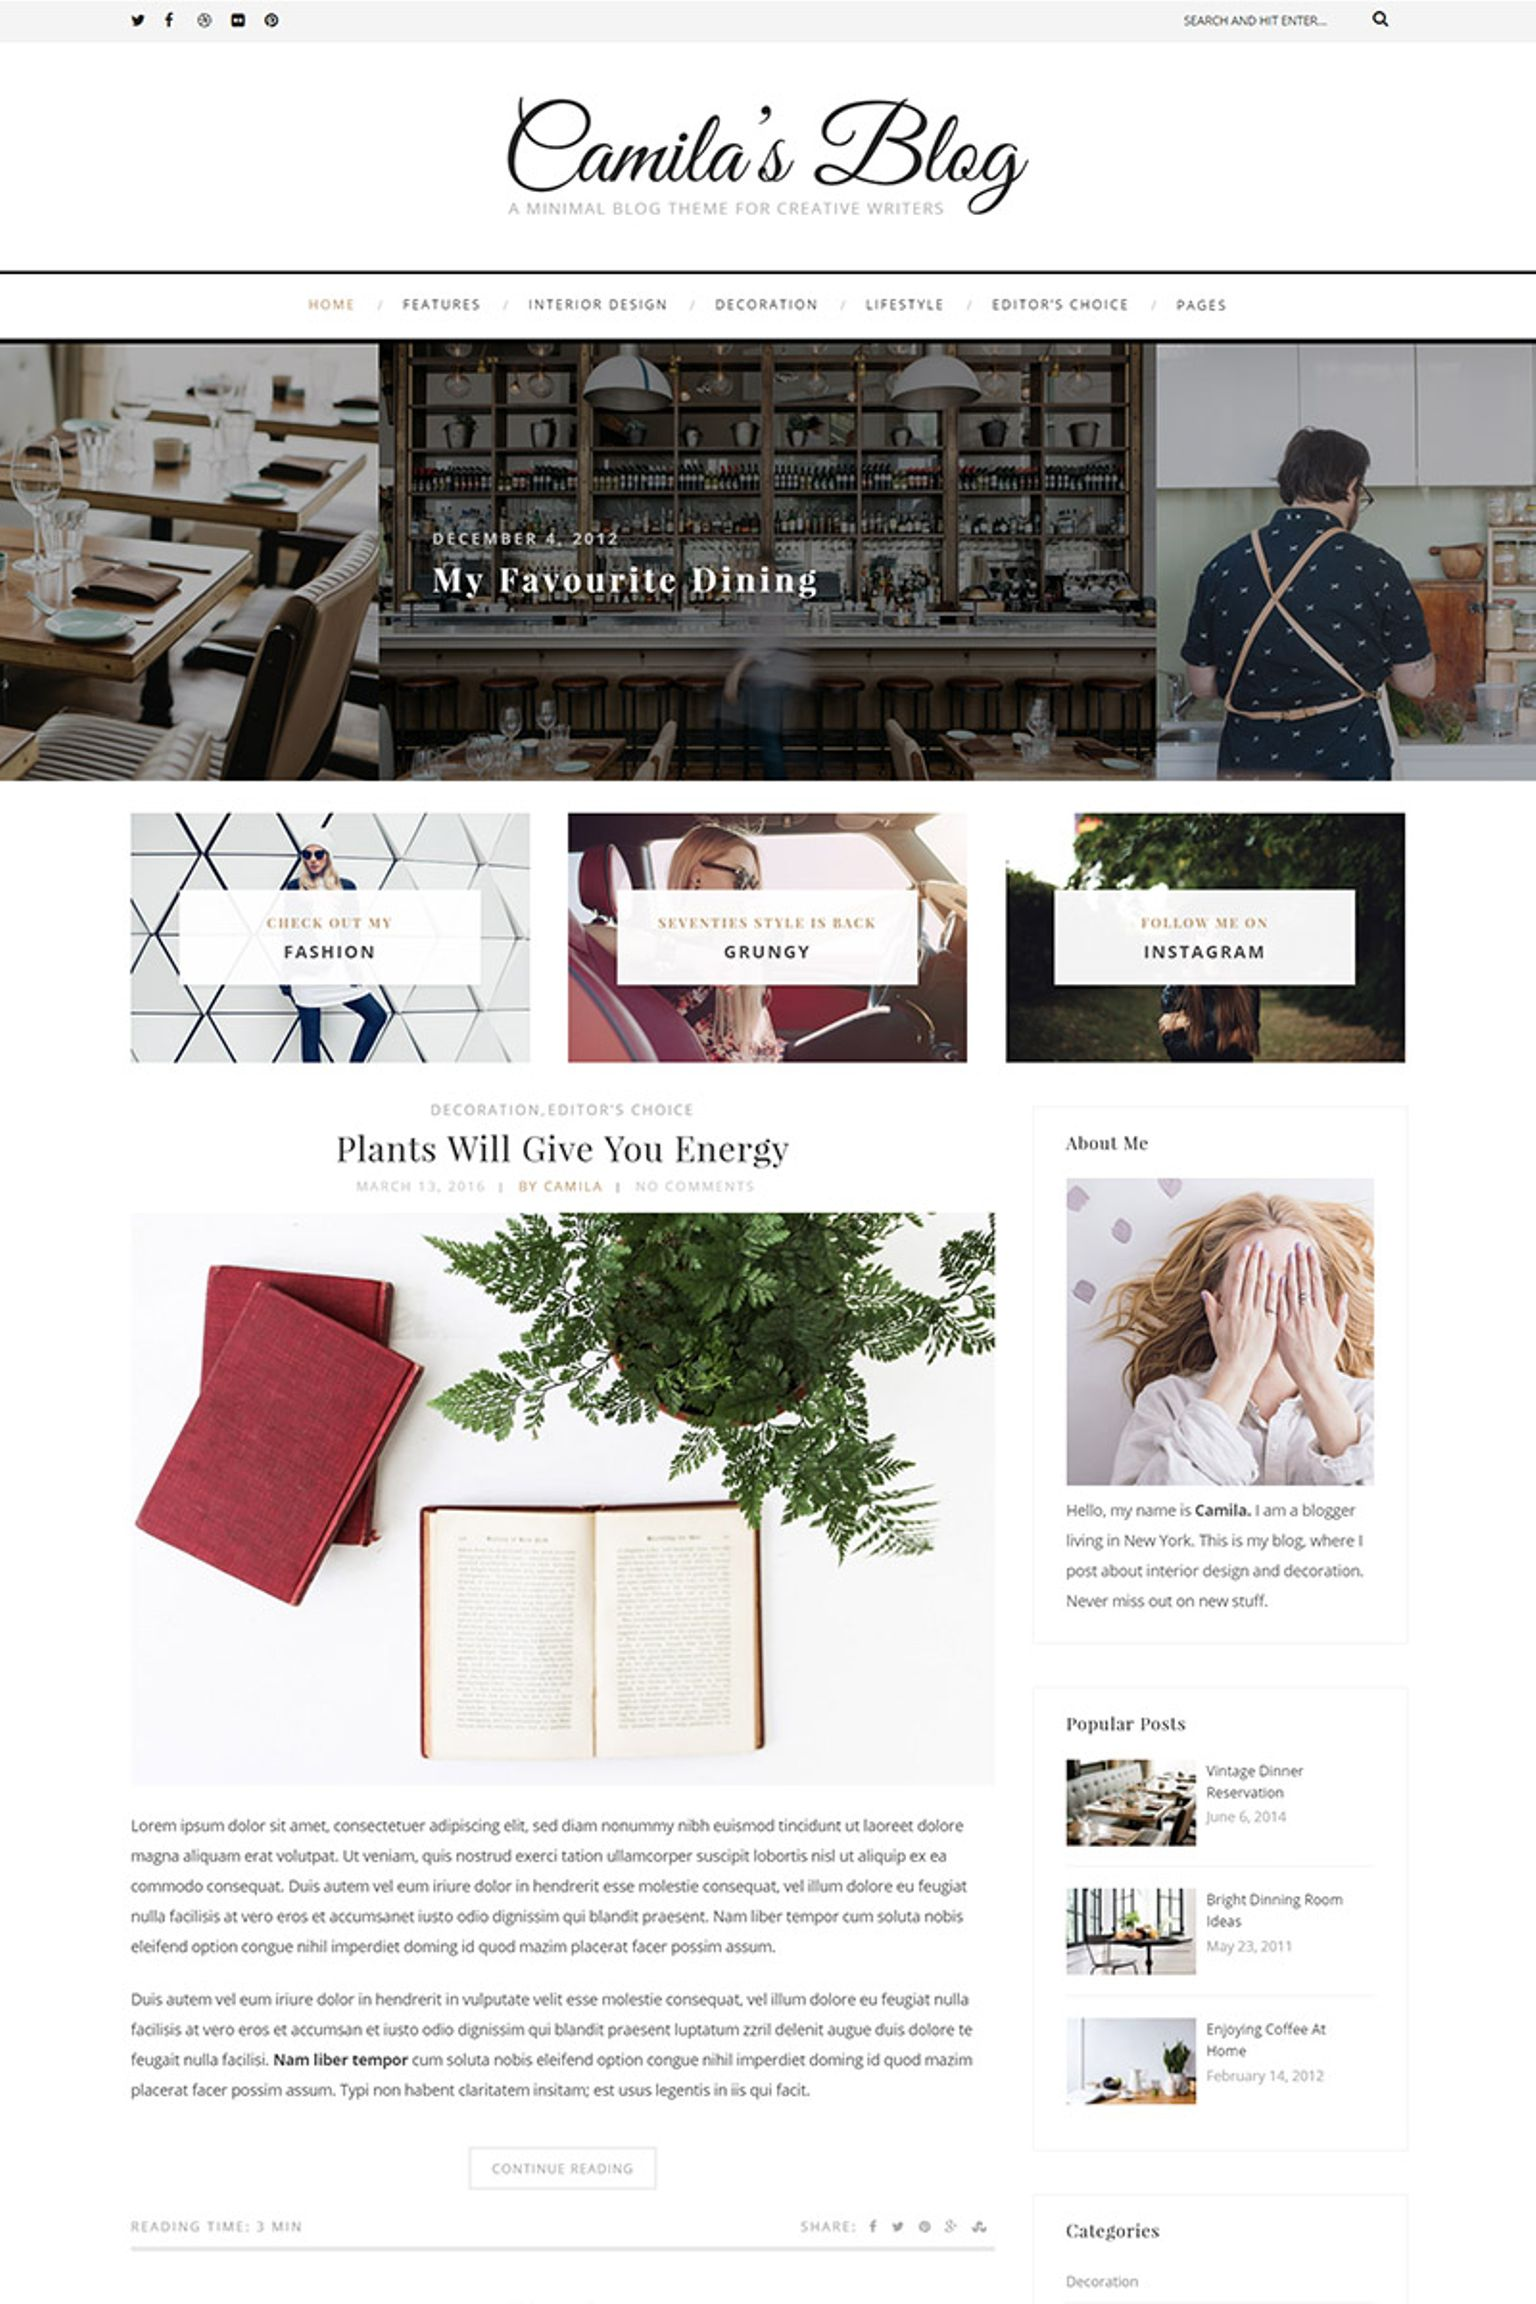 Website Design Template 65636 - theme bold clean creative fashion food hipster instagram lifestyle minimal personal photography travel wordpress essential grid masonry sidebar fullwidth